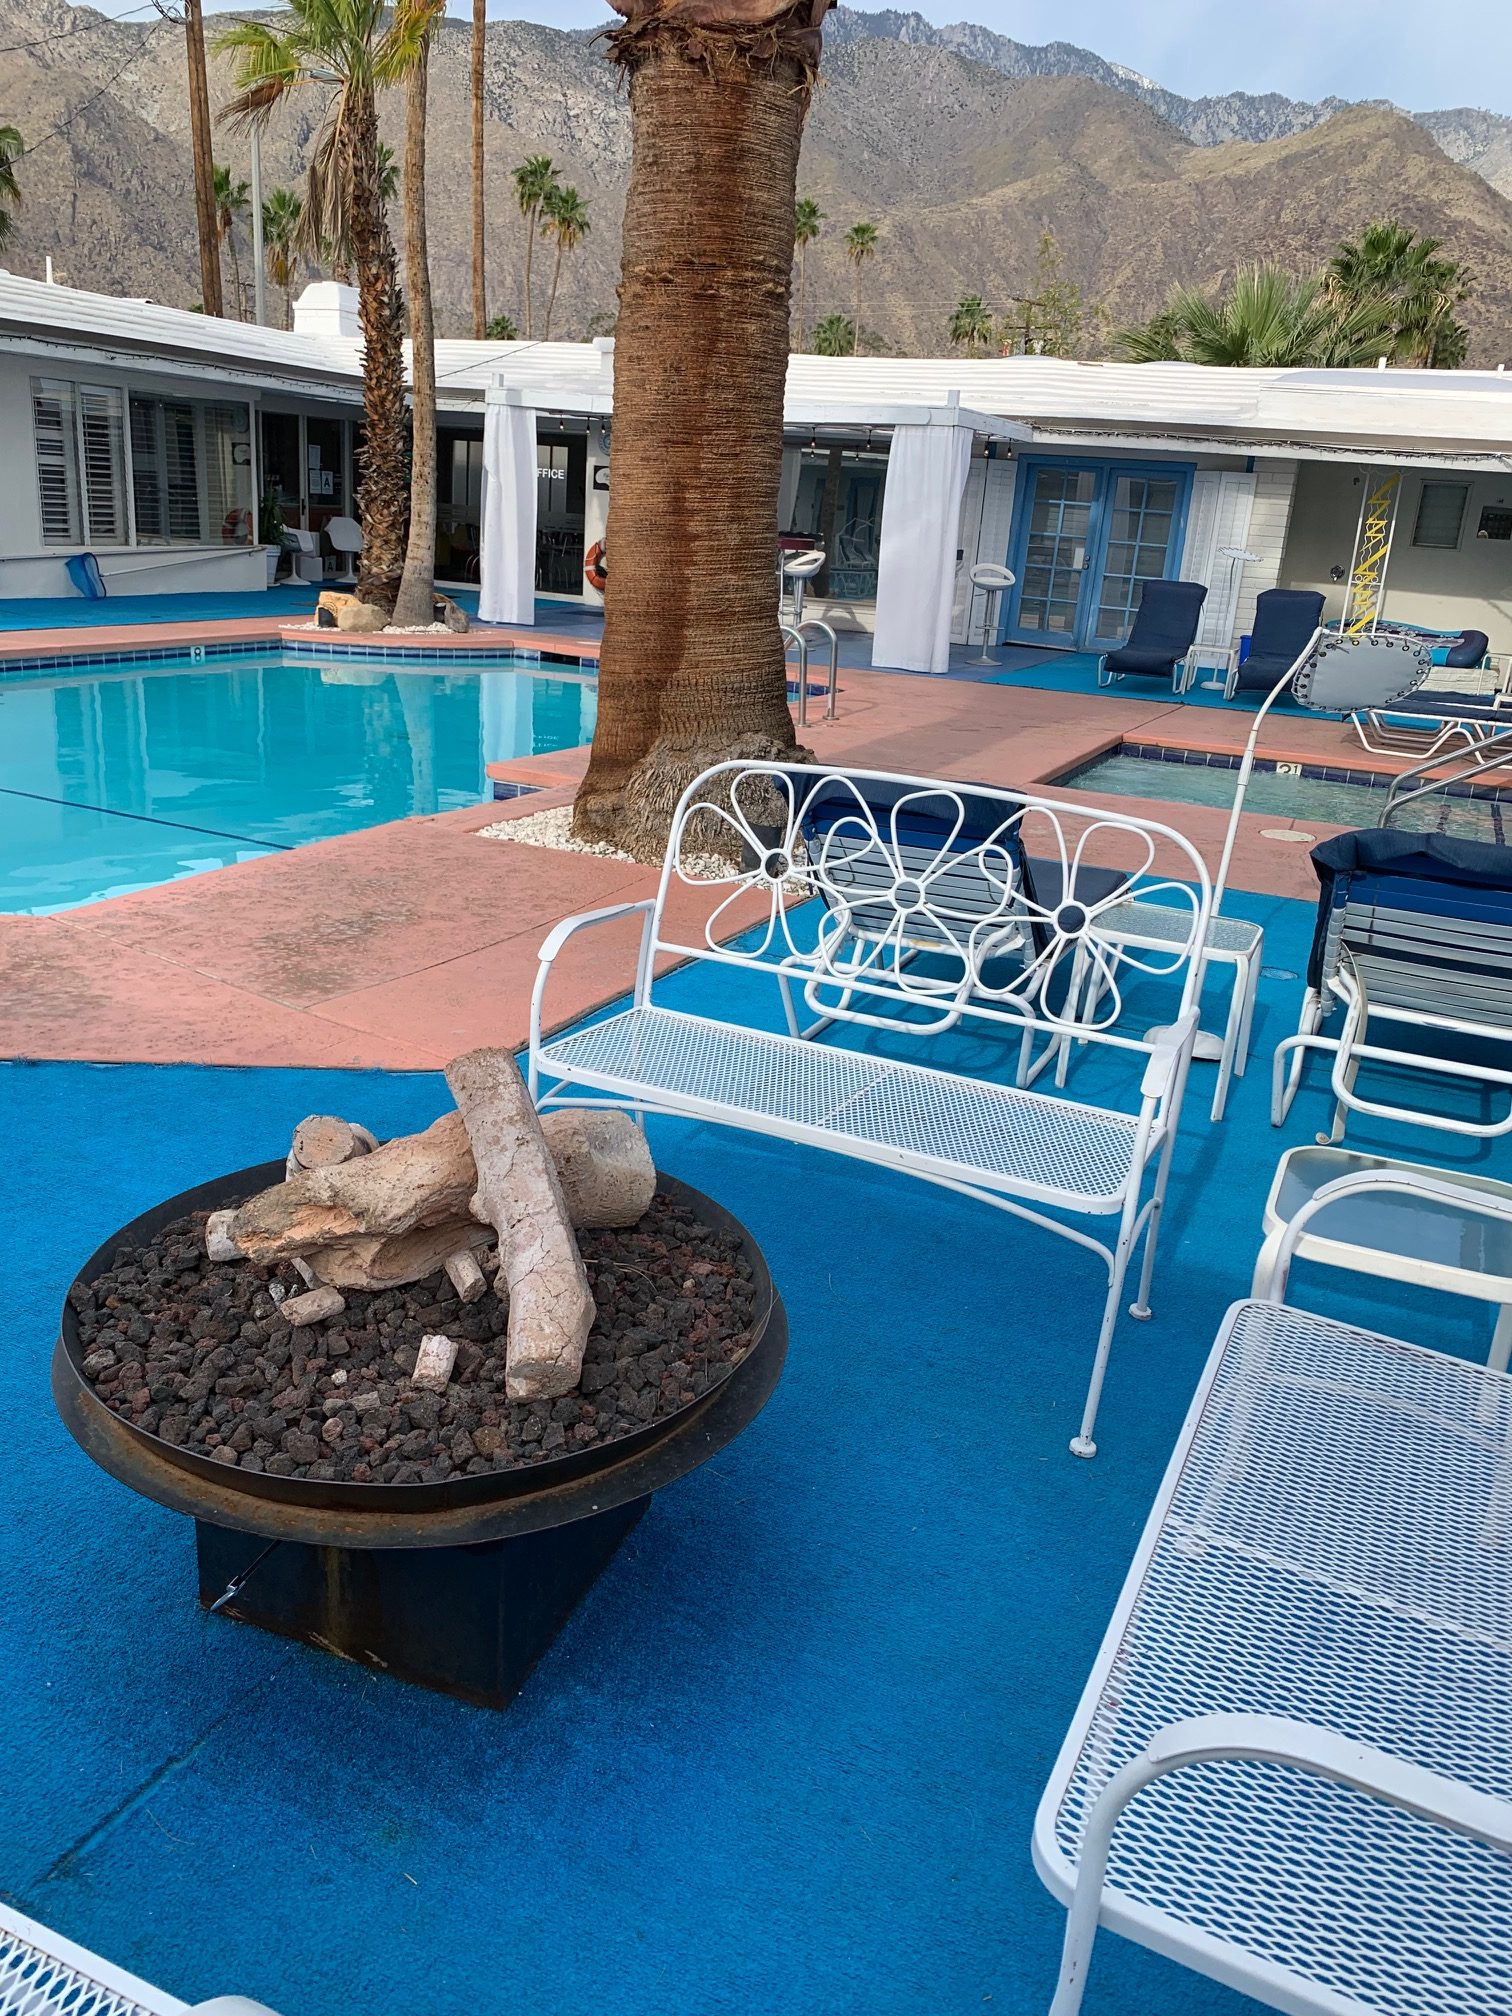 Poolside at the Palm Springs Rendezvous Hotel